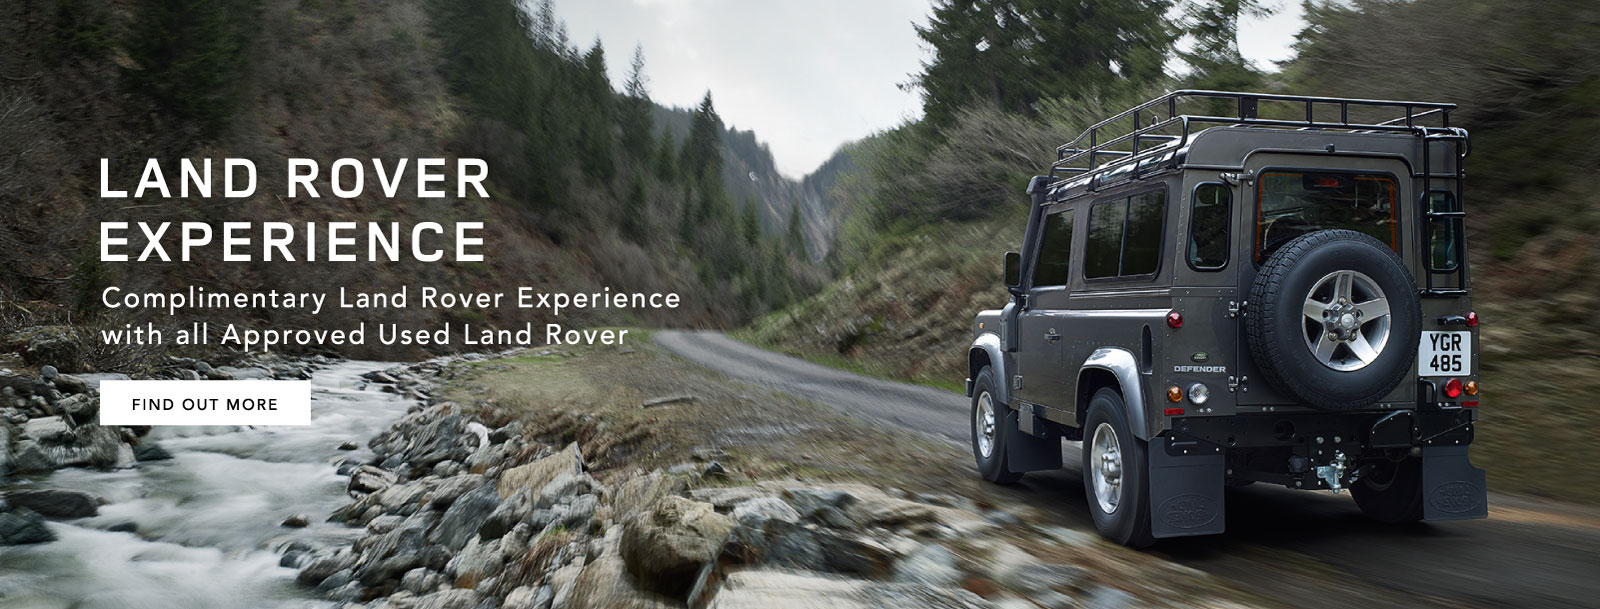 Land Rover Experience BB